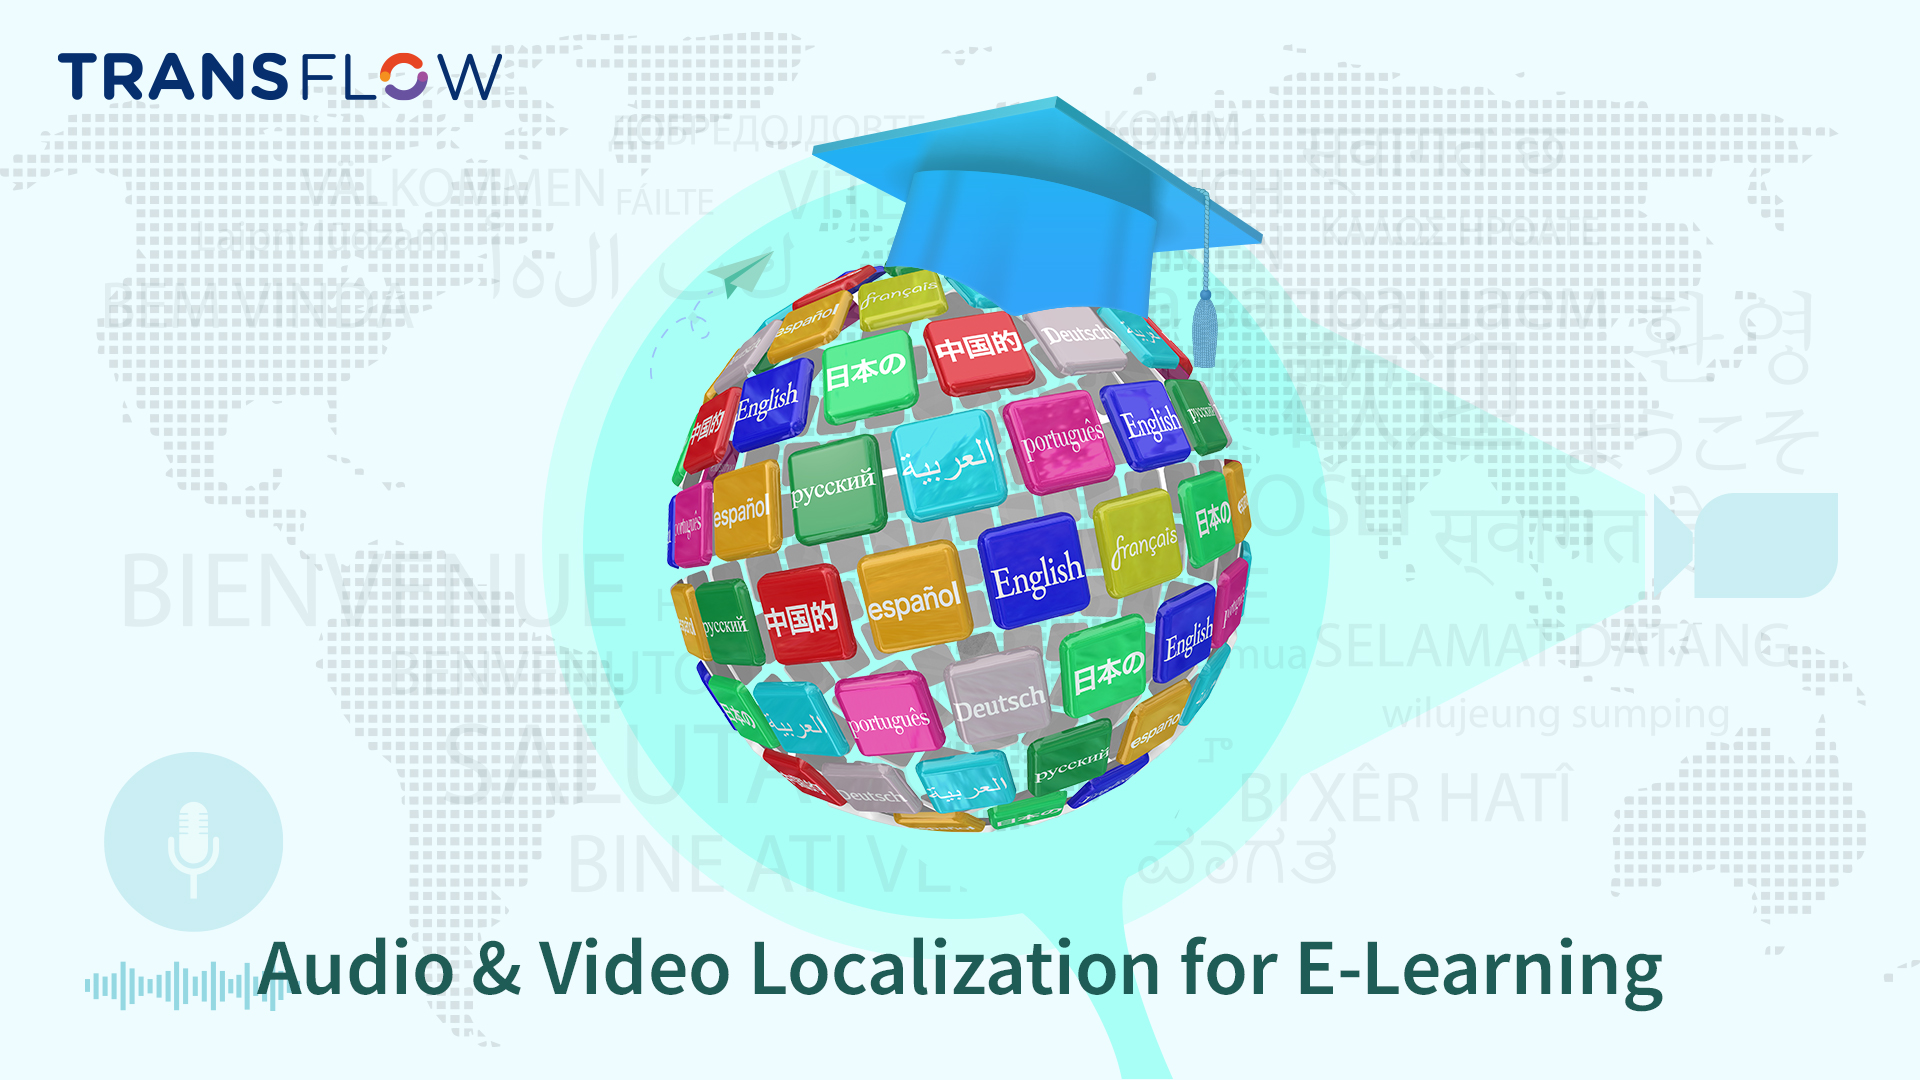 Audio & Video Localization for E-Learning